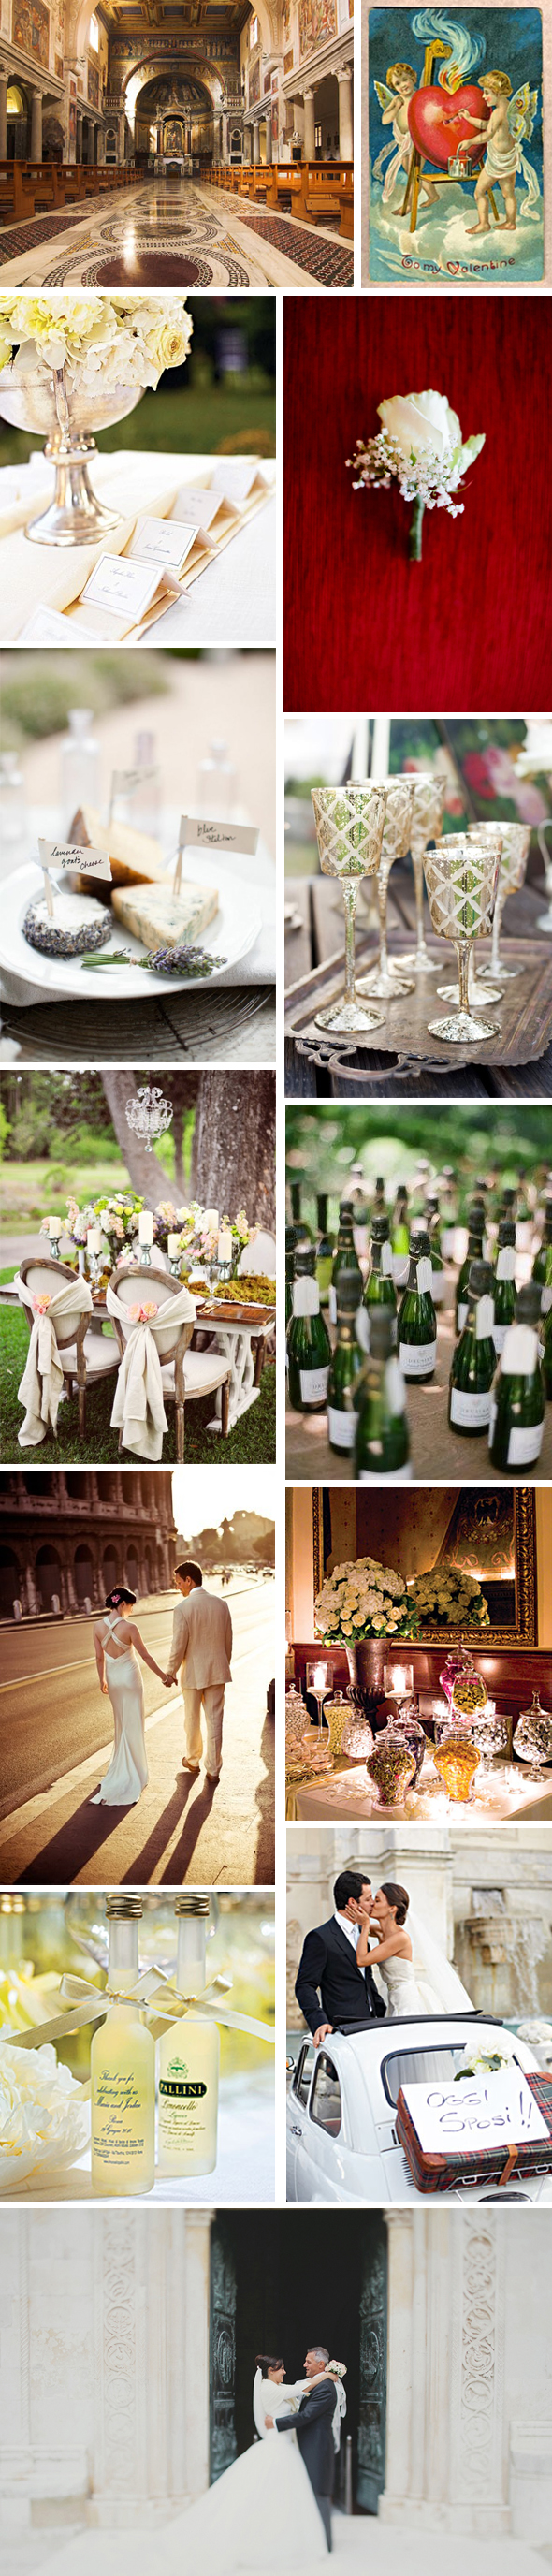 weddings in Italy valentine's day